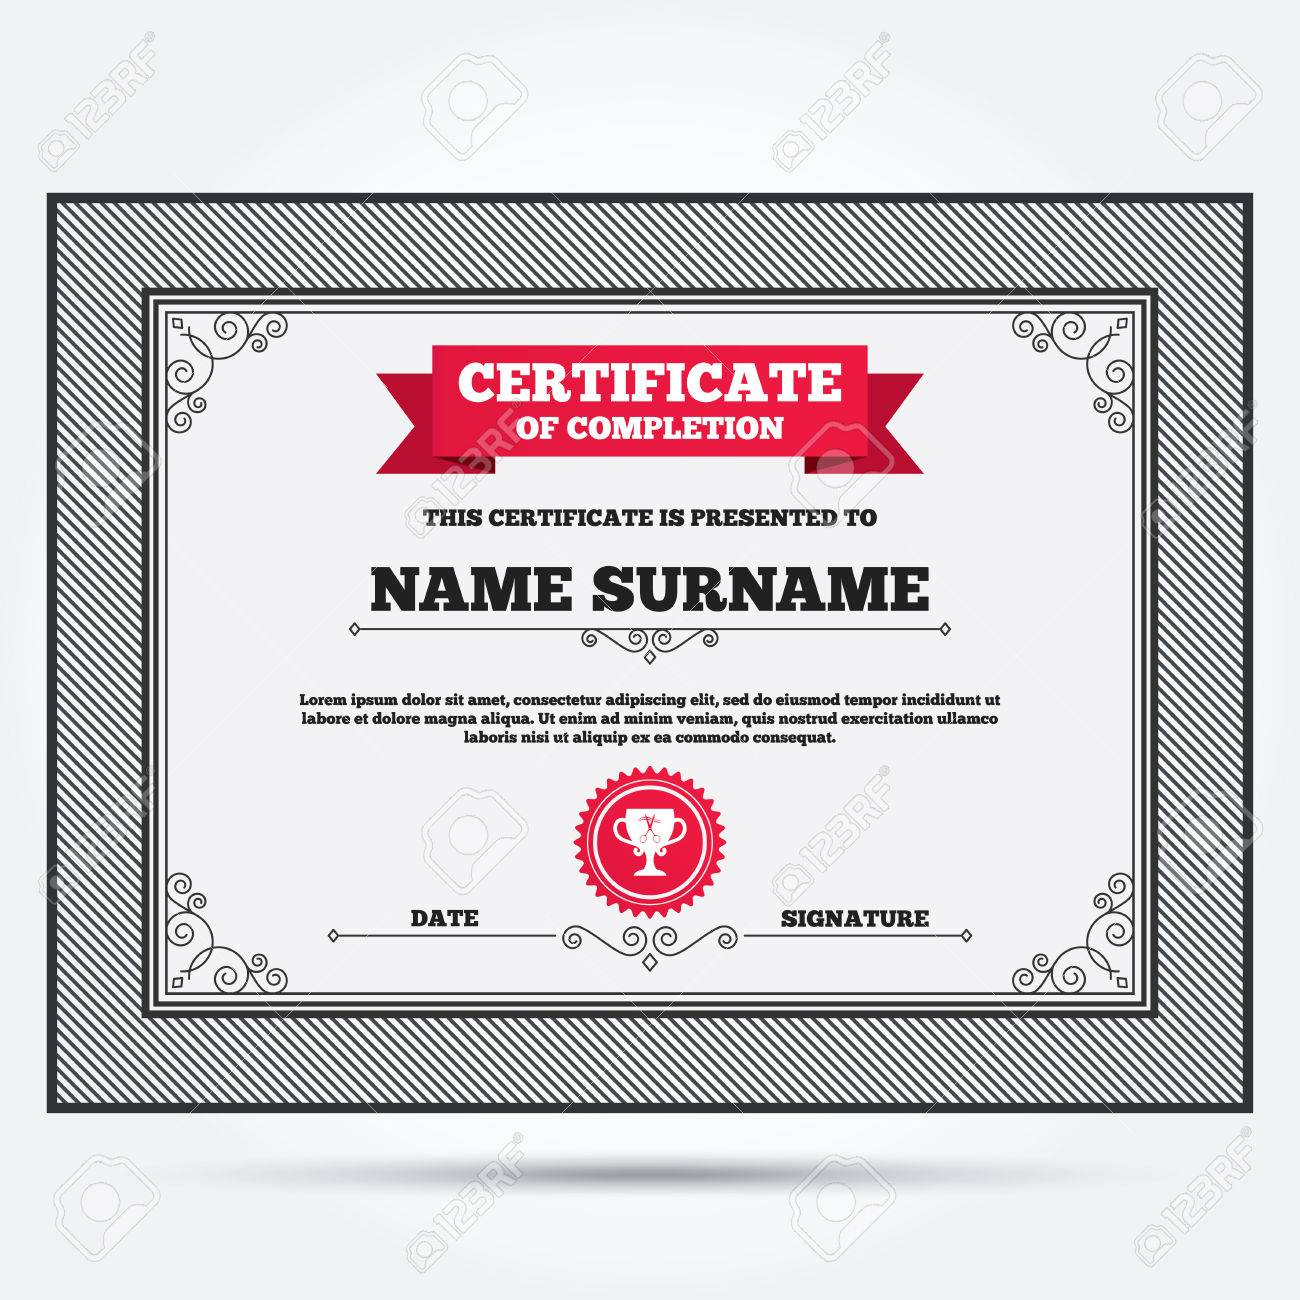 Certificate of completion scissors cut hair sign icon certificate of completion scissors cut hair sign icon hairdresser or barbershop symbol winner alramifo Gallery